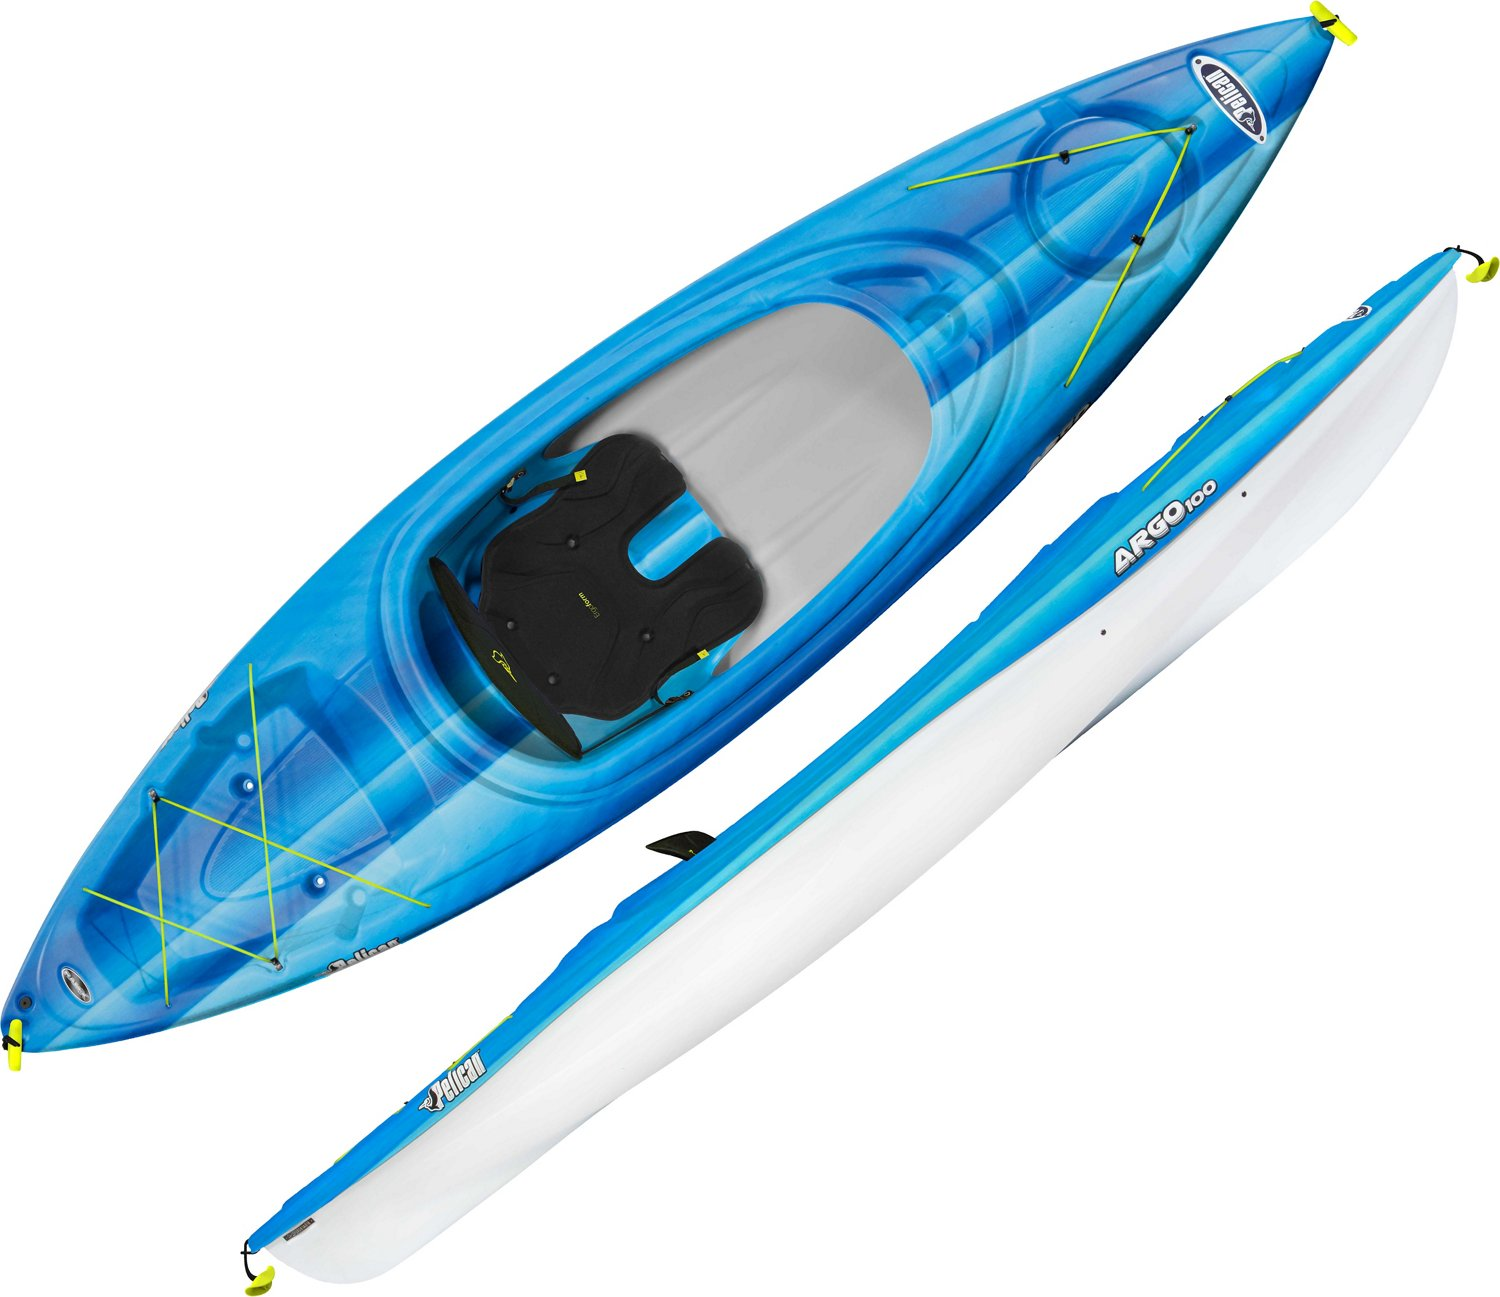 Pelican Argo 100 10 ft Kayak